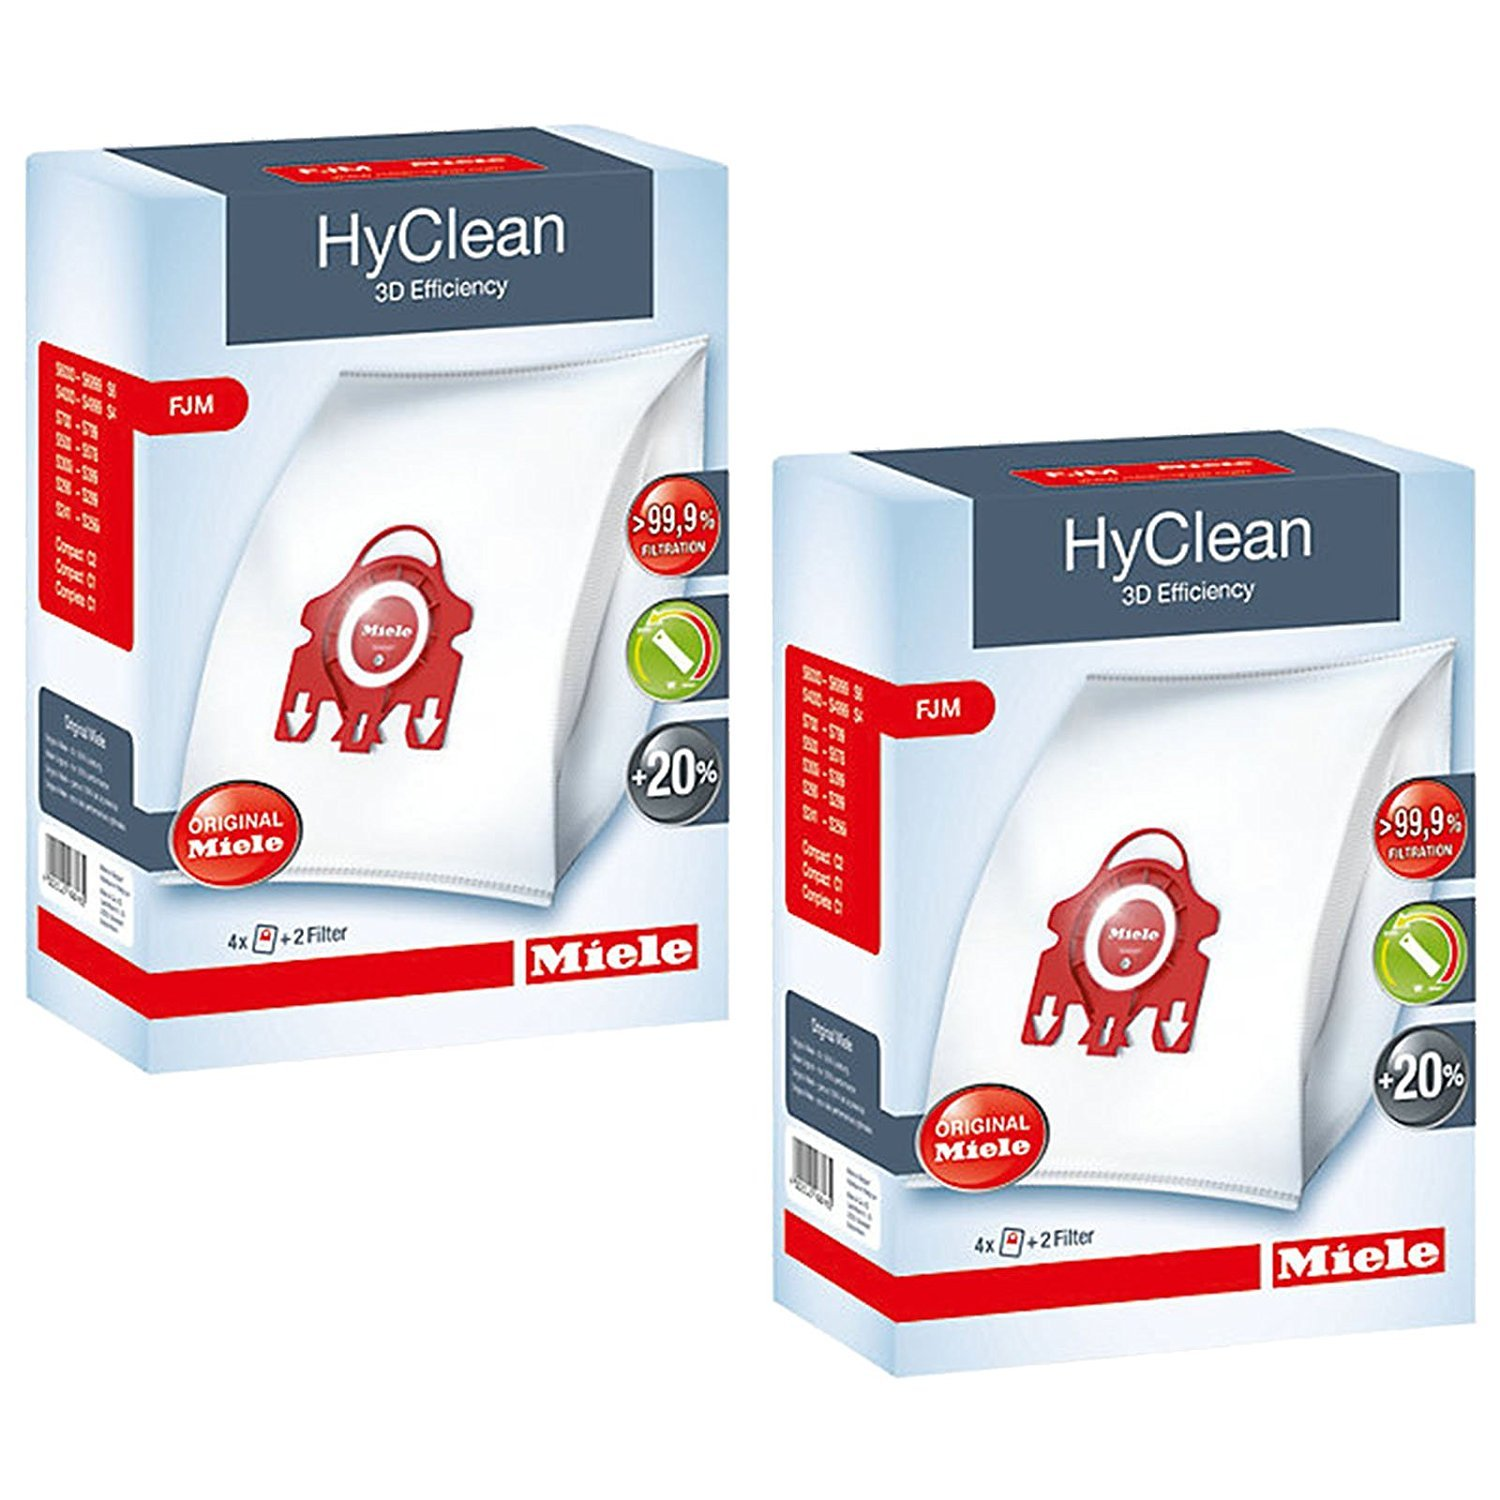 Miele HyClean 3D Efficiency Dust, Type FJM, 8 Bags & 4 Filters, Red by Miele